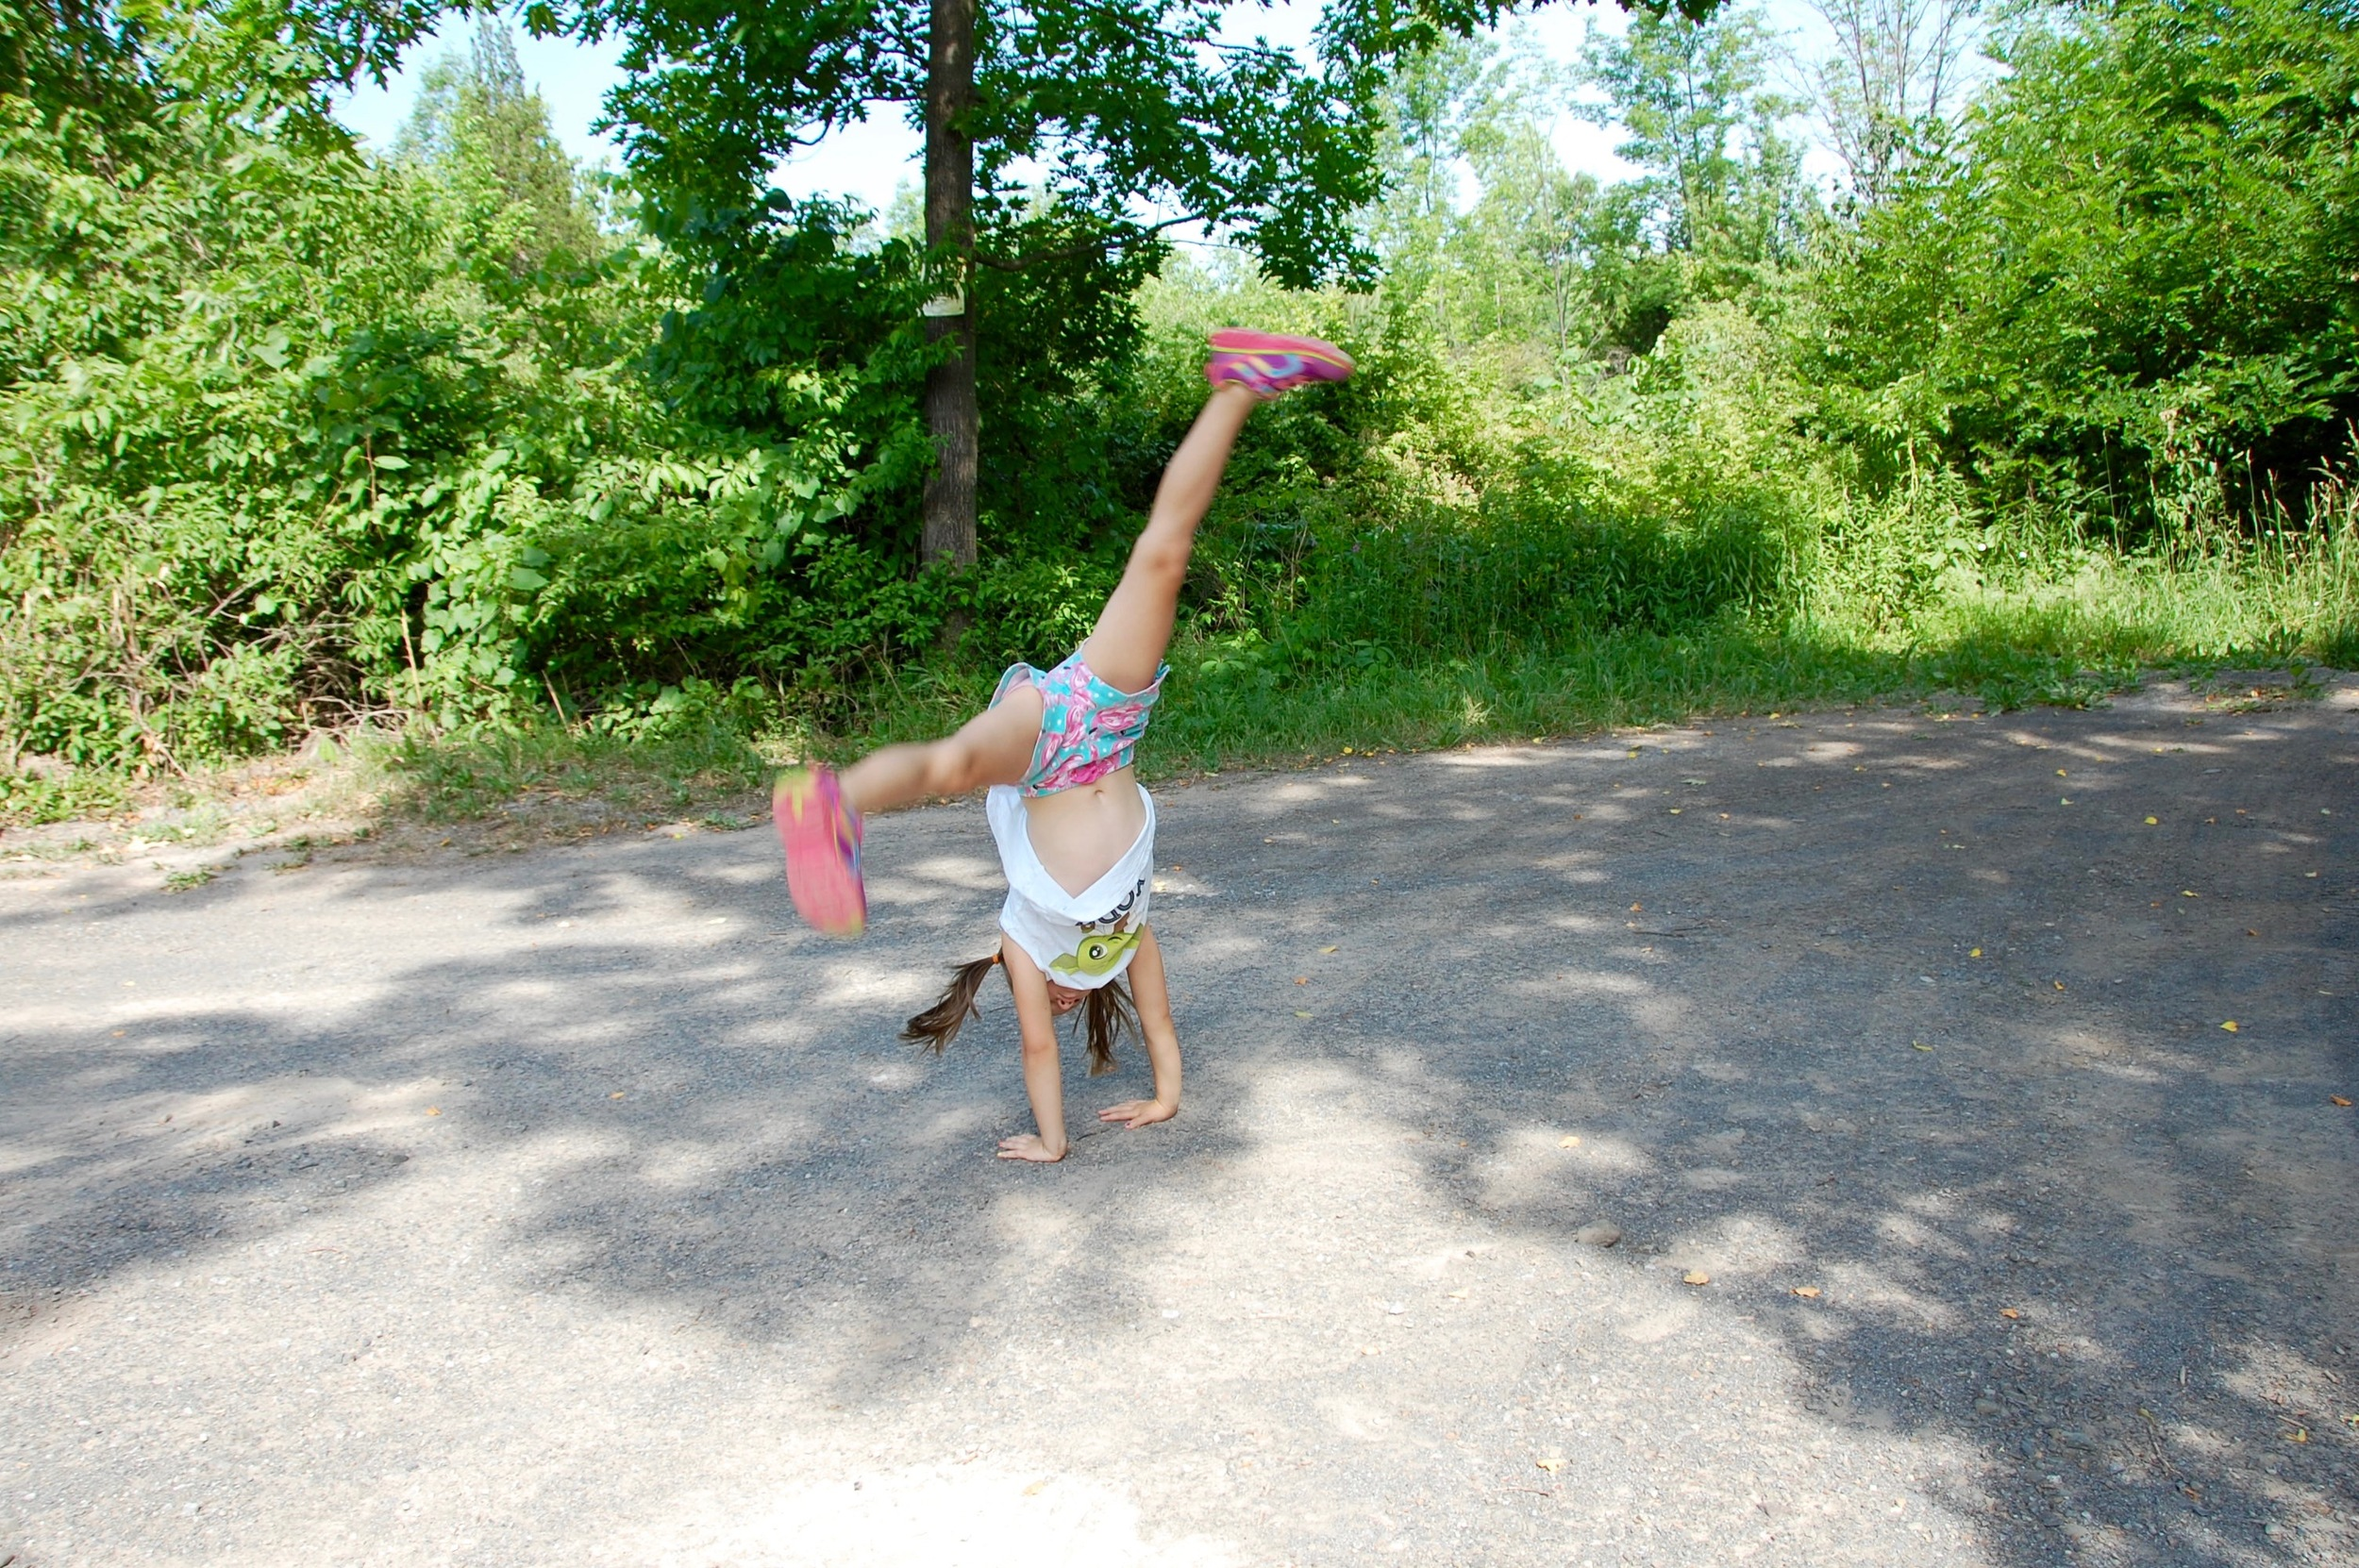 And this is Dorian who loves to do cartwheels in the Catskills. And also everywhere she goes.